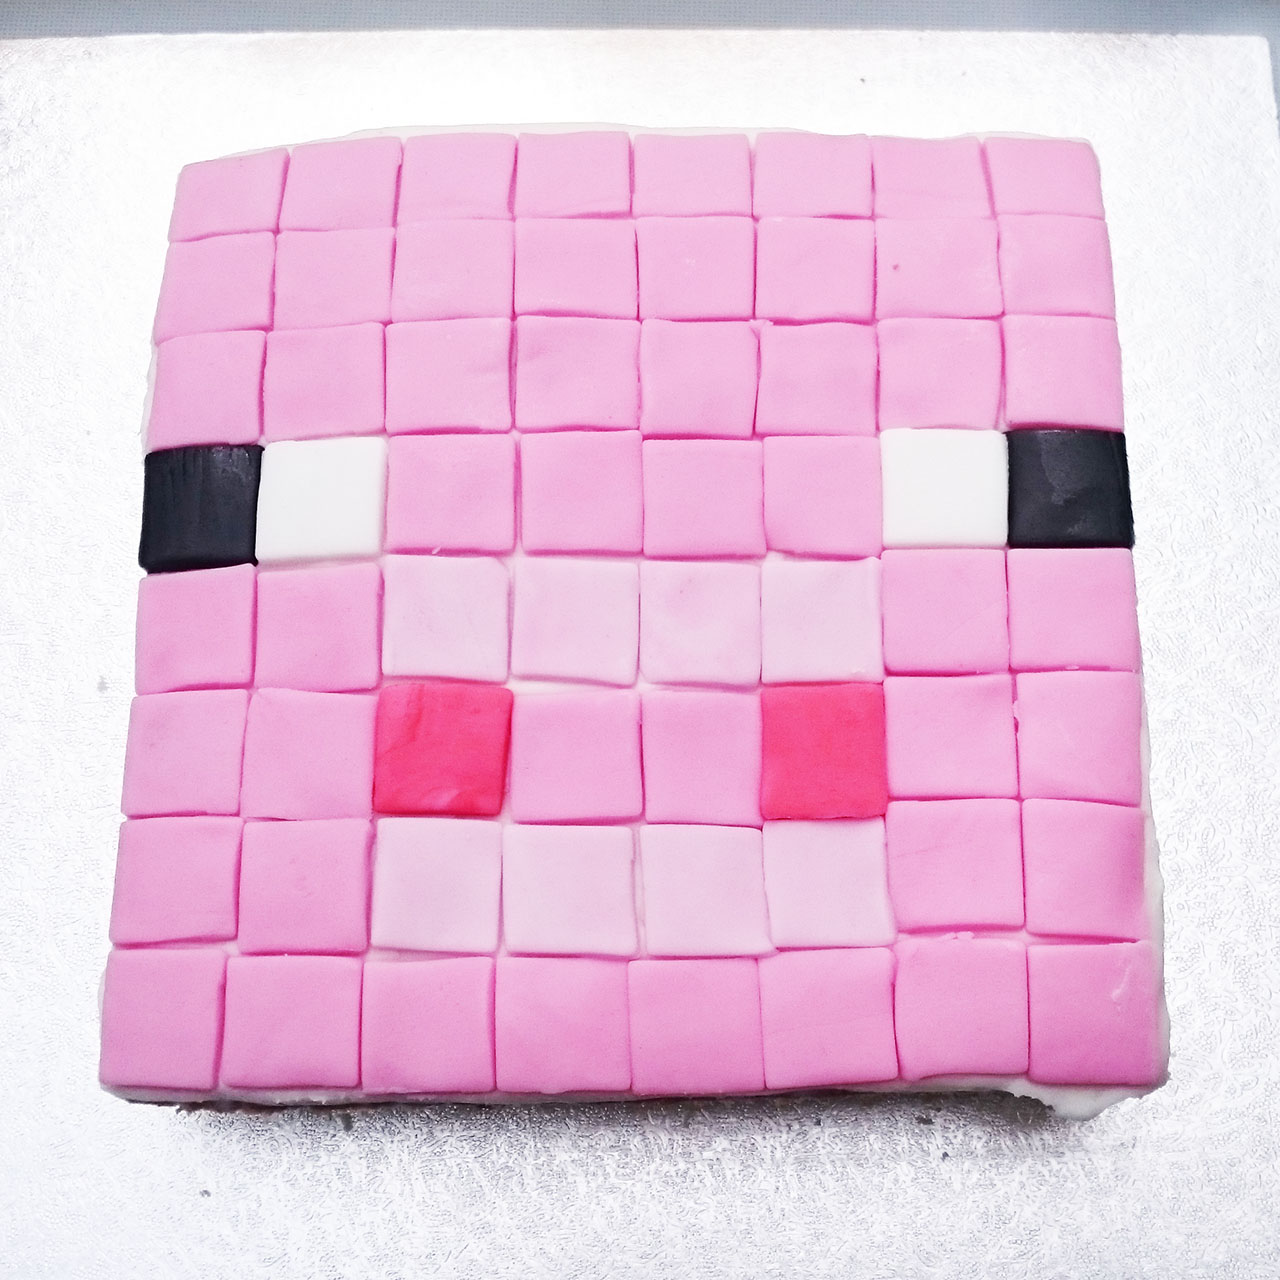 minecraft cake recipe.  Cake Minecraft Cake I Chose Two Designs Simple Ground Blocks And A Pink Pig  Both Were Made Using Traybake Recipe Iu0027ve Been Given By Friend Years  To Cake Recipe